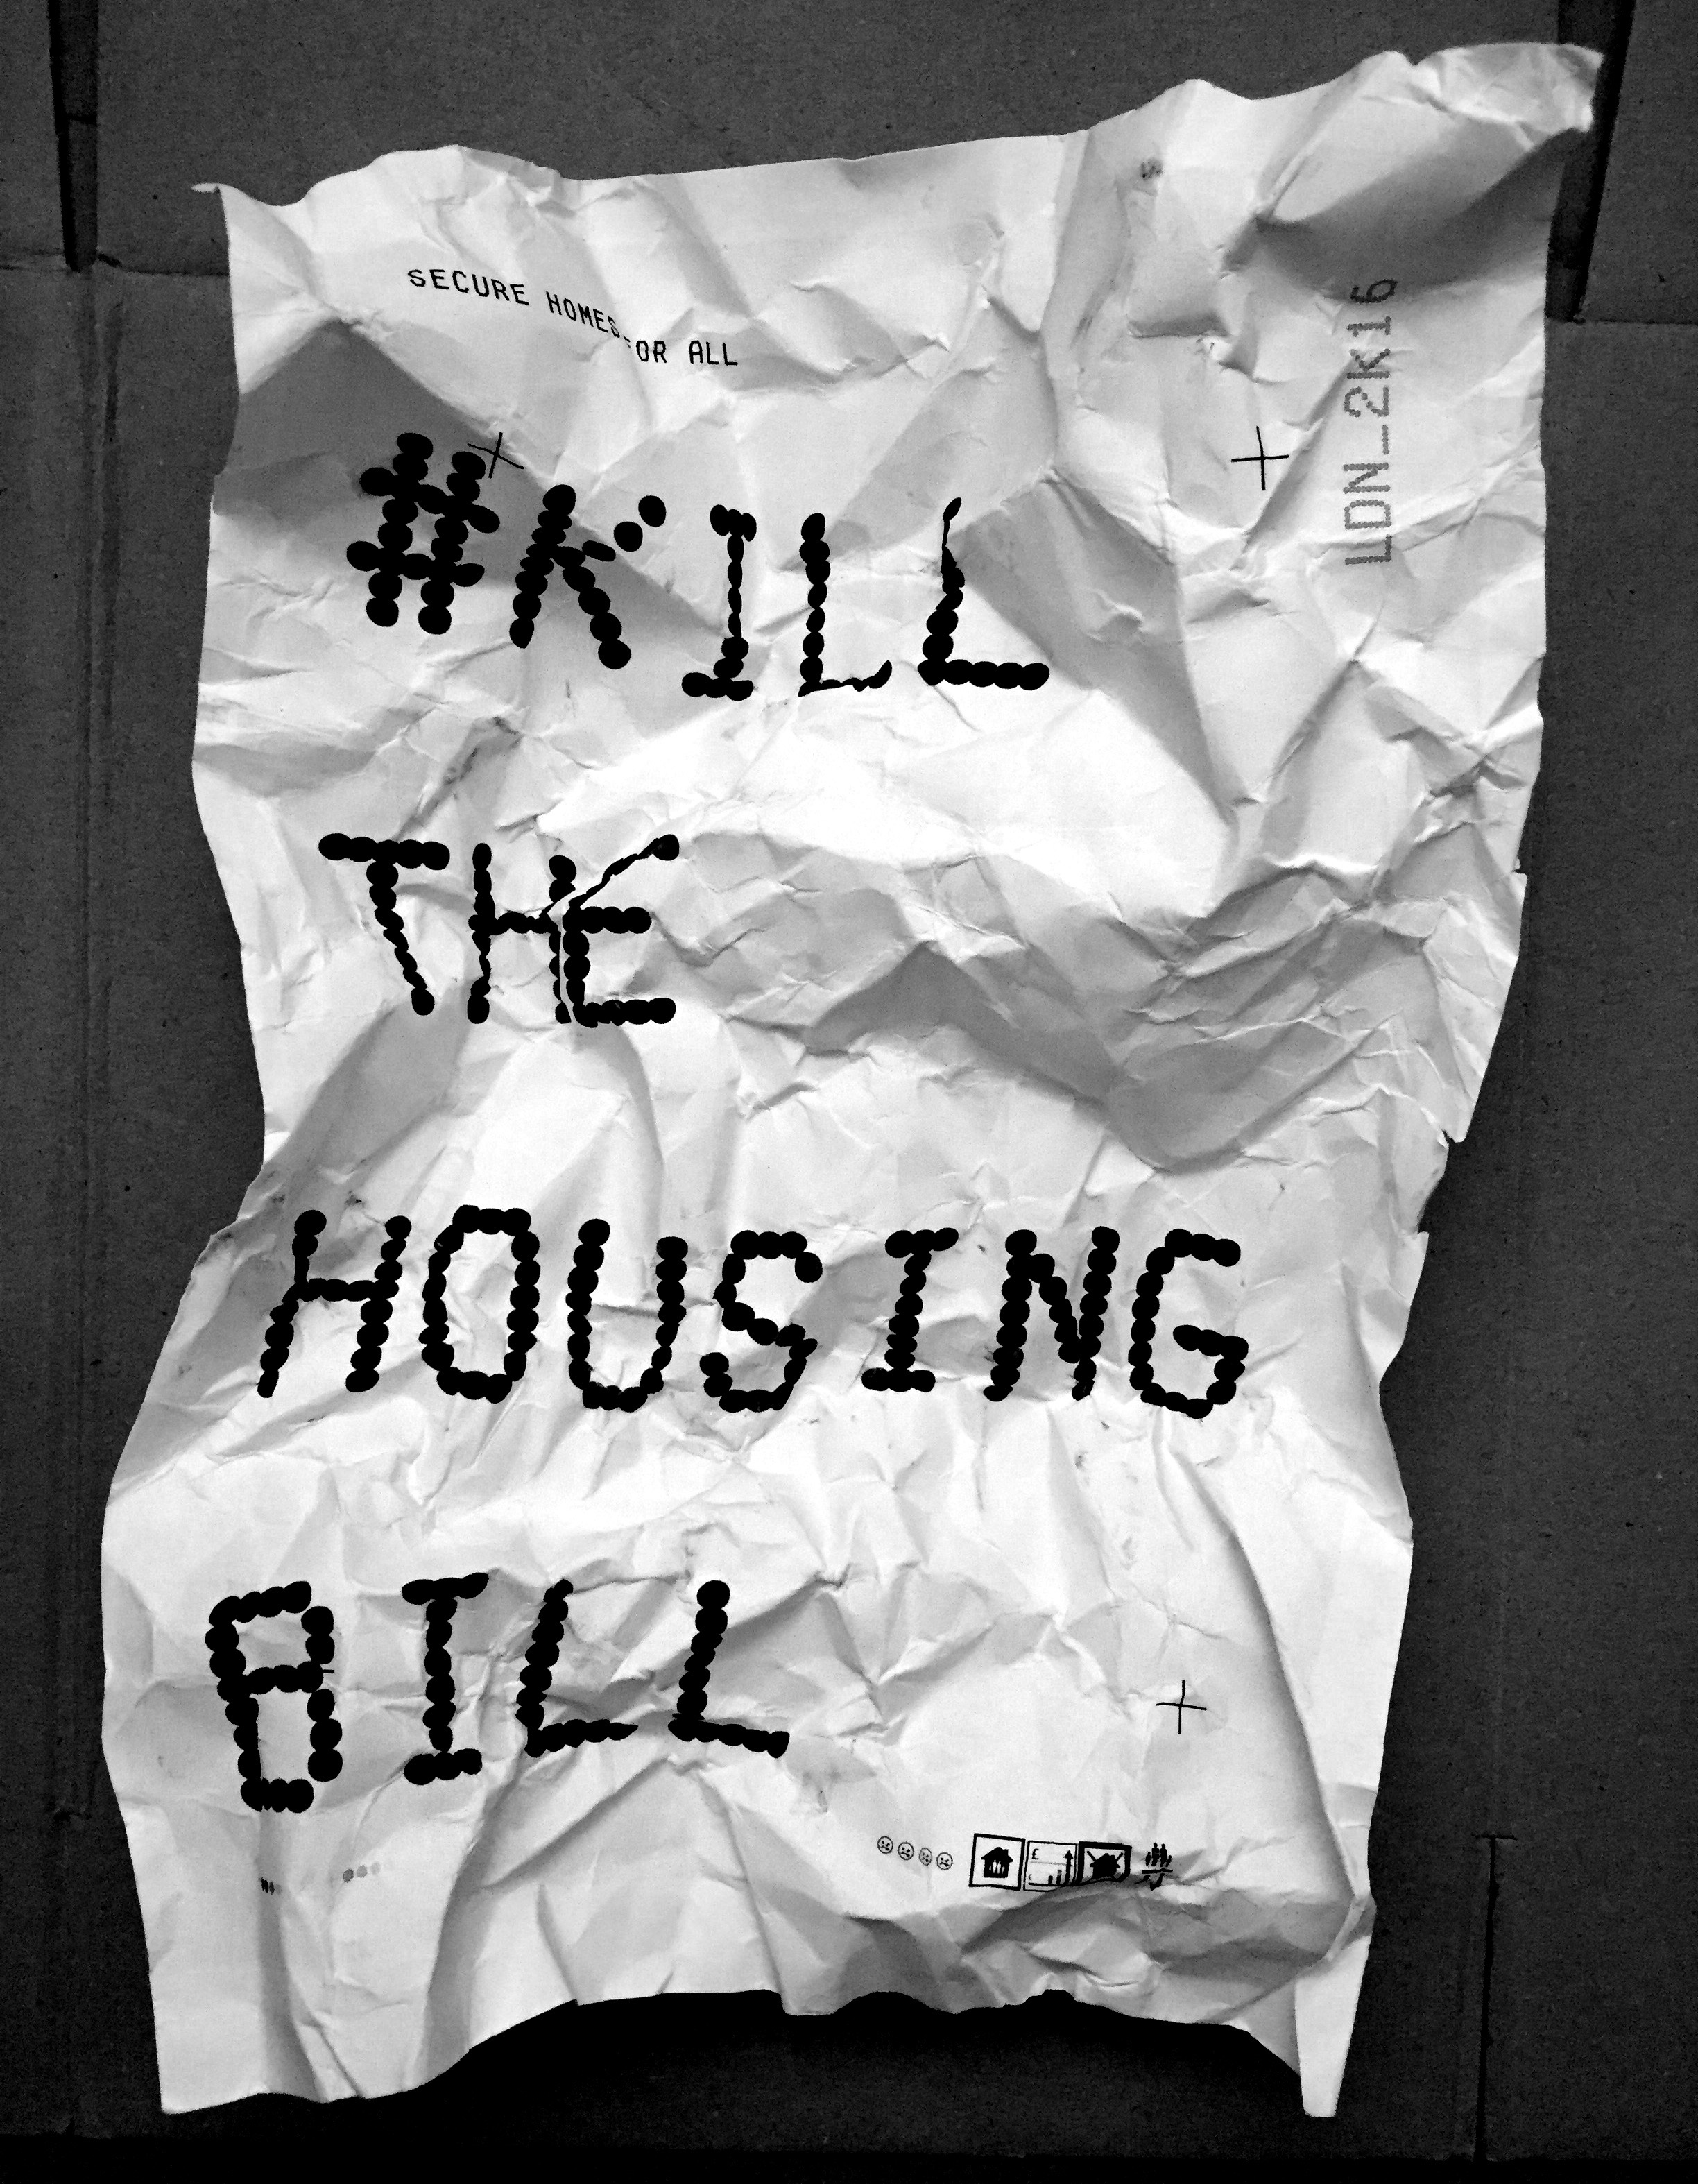 KILLTHEHOUSINGBILL_screwedup1©SNUFFCREATIVE2016.jpg